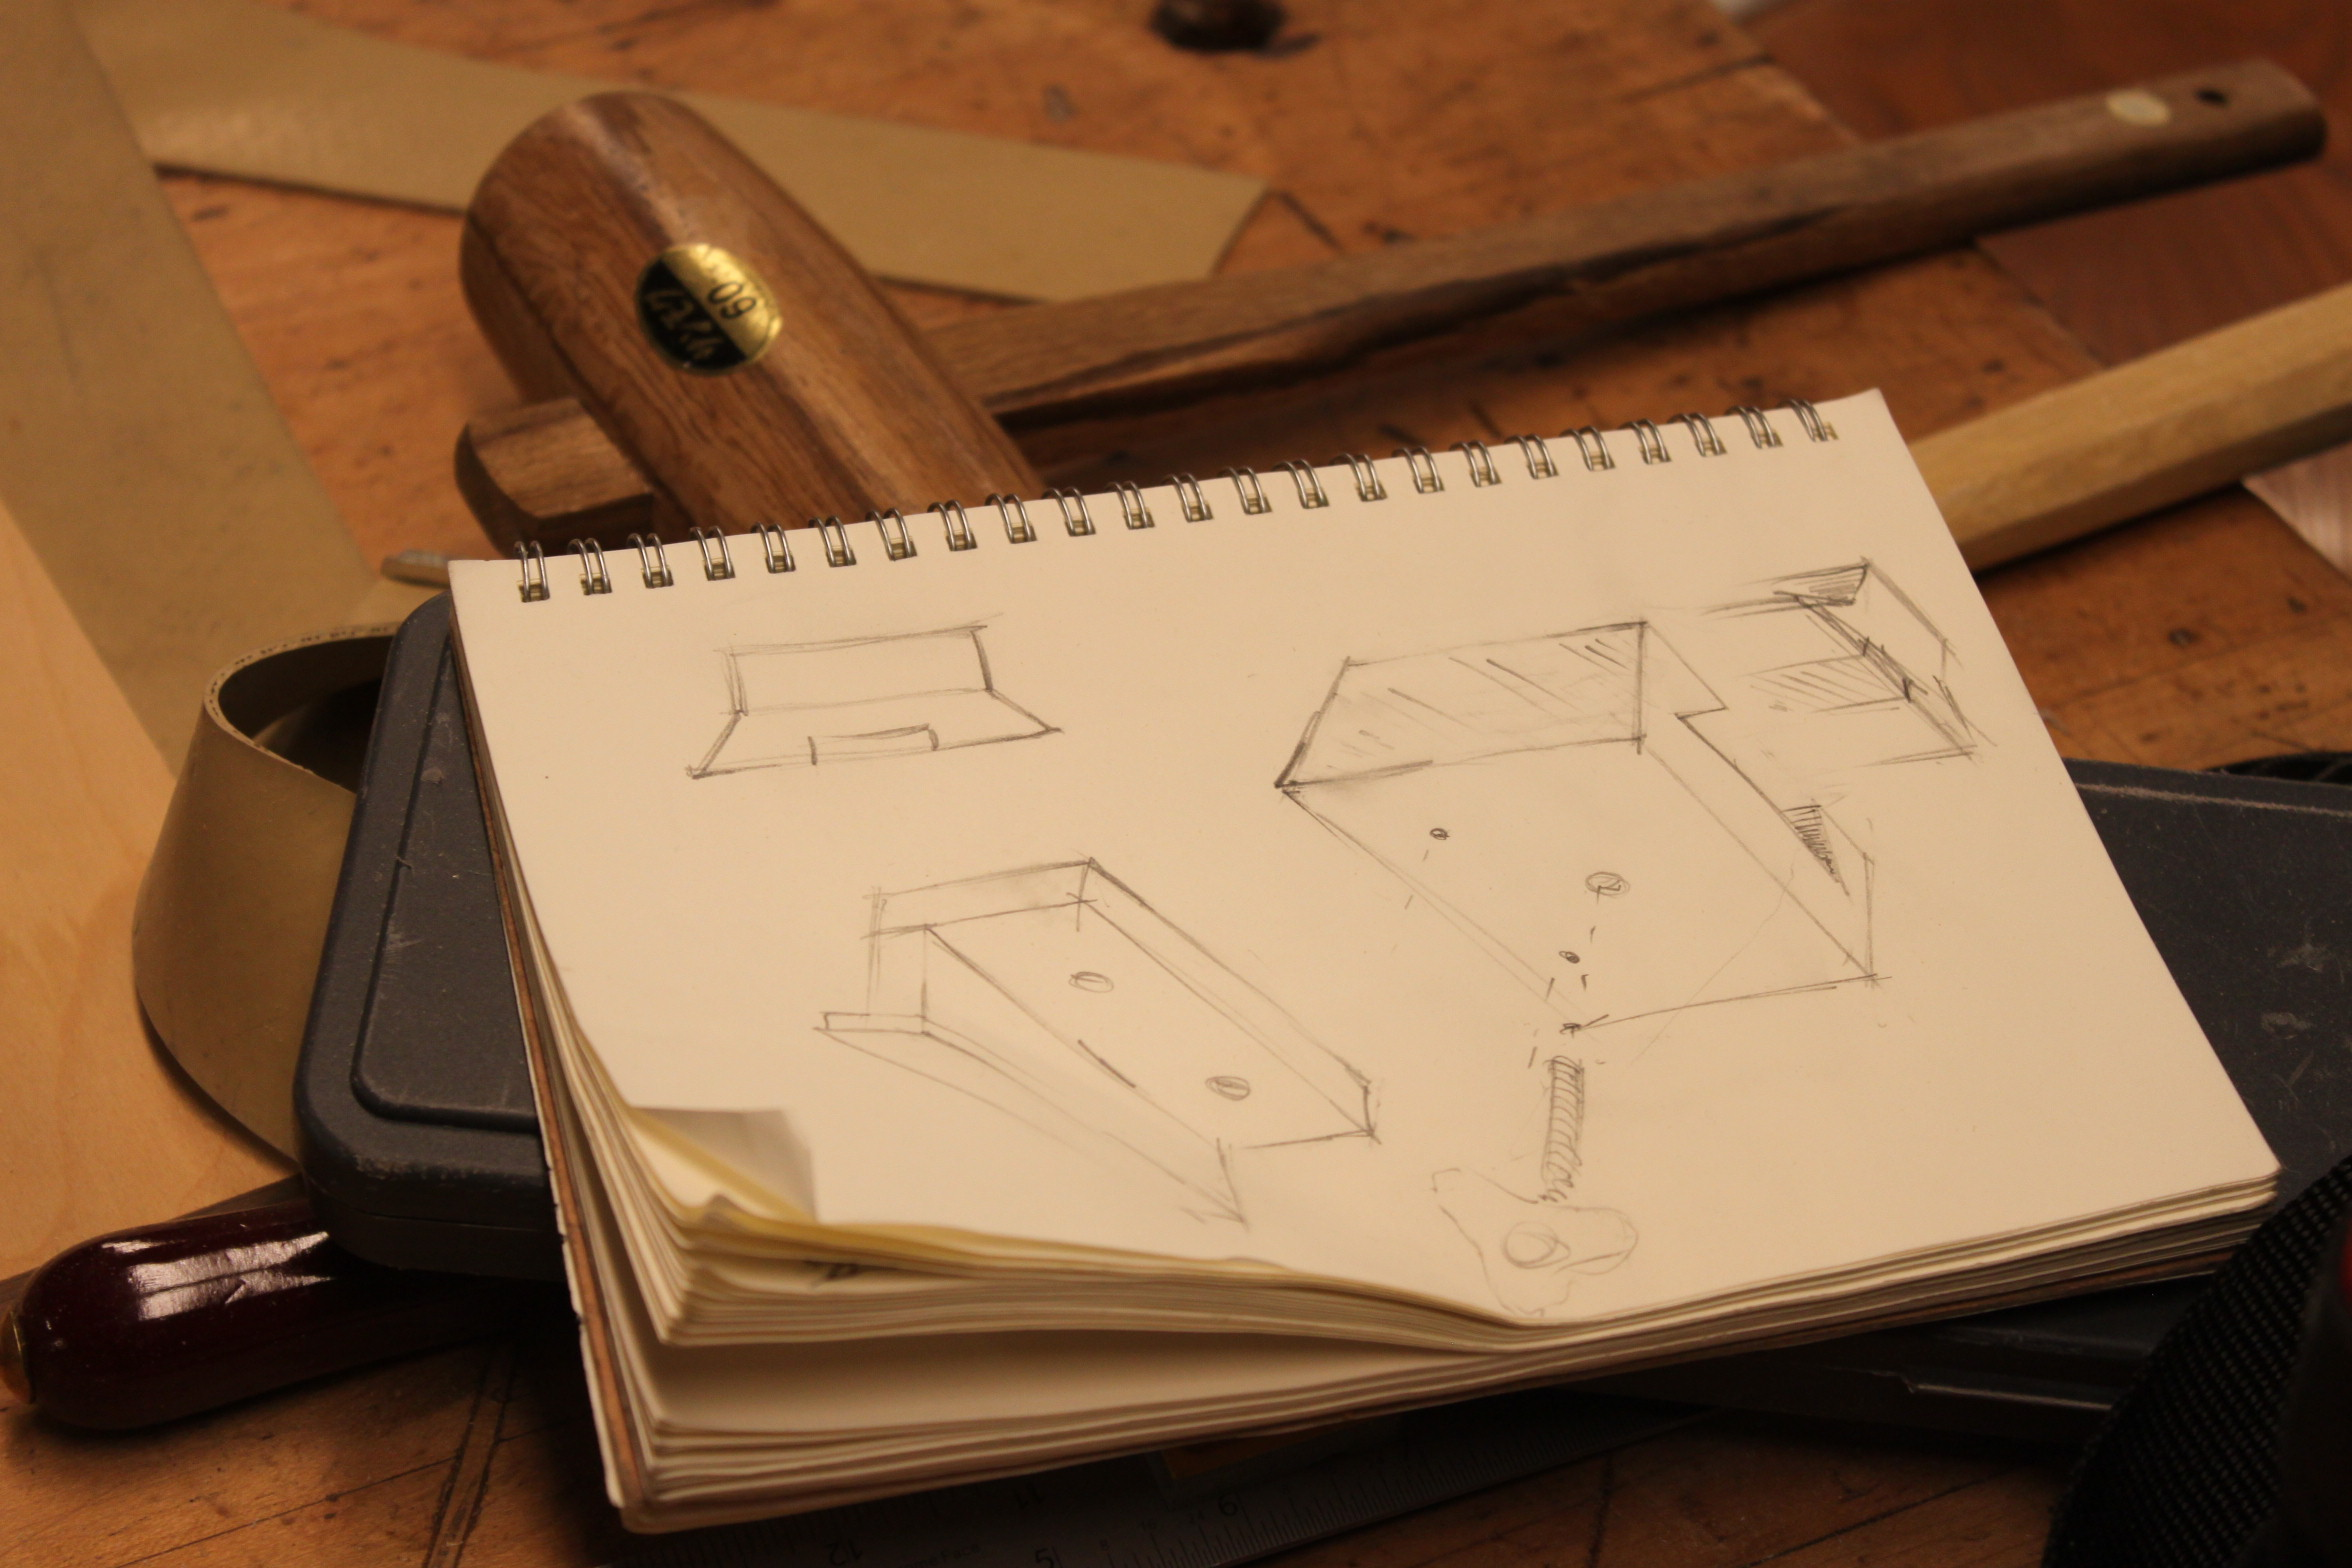 Laying open on a workbench sits Trevor Rogers' carpentry sketchbook. Photo taken on Nov. 13, 2017.